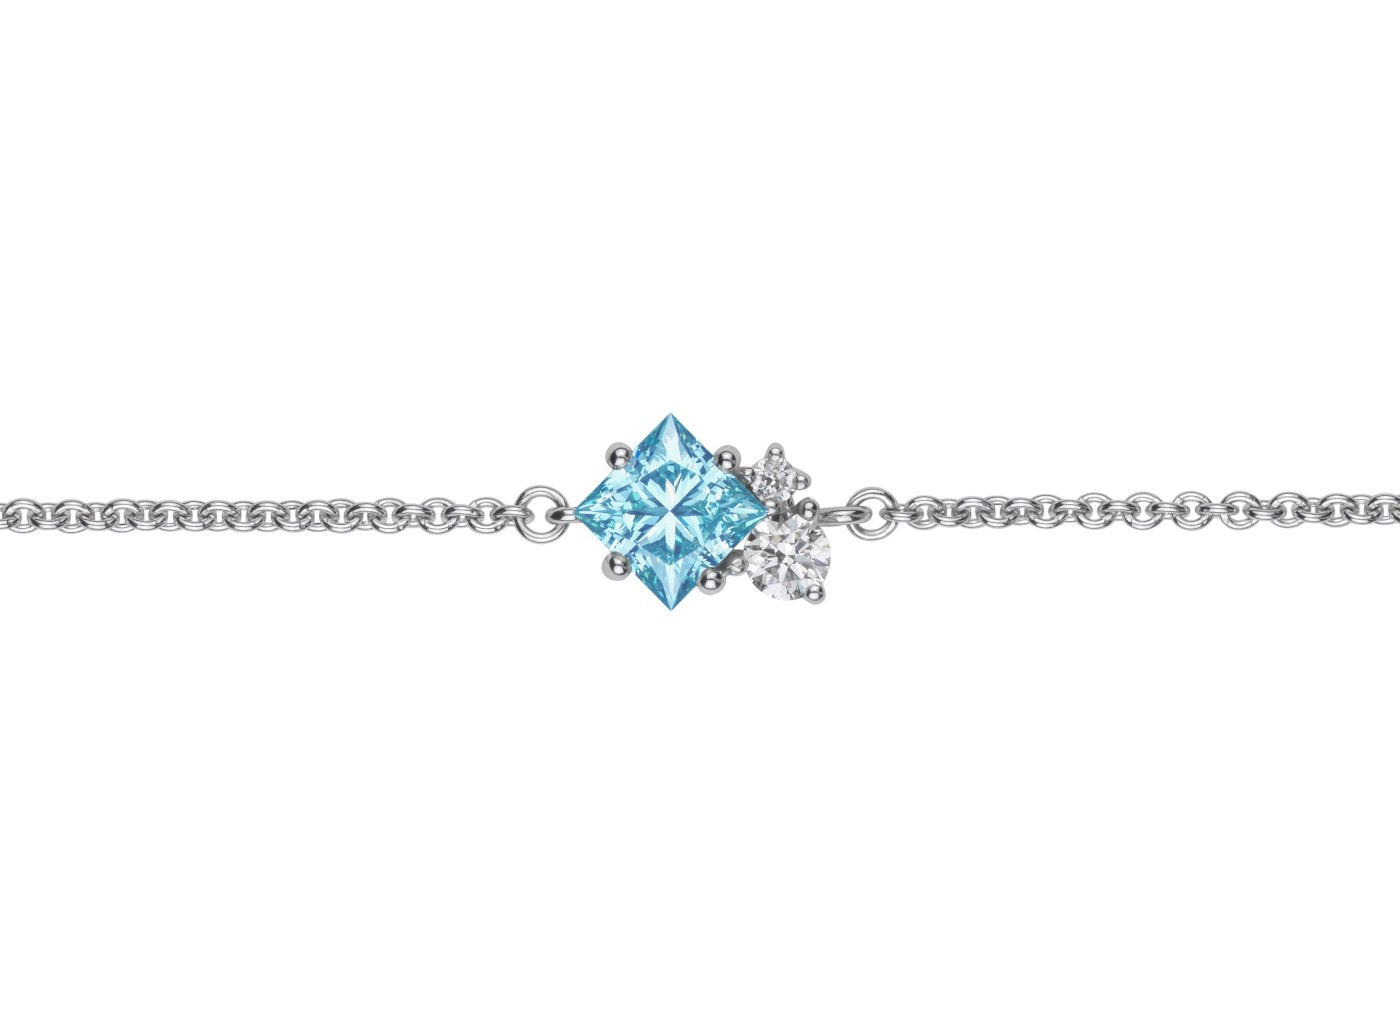 Front view of Princess Cluster 3/4 carat bracelet with blue and white diamonds